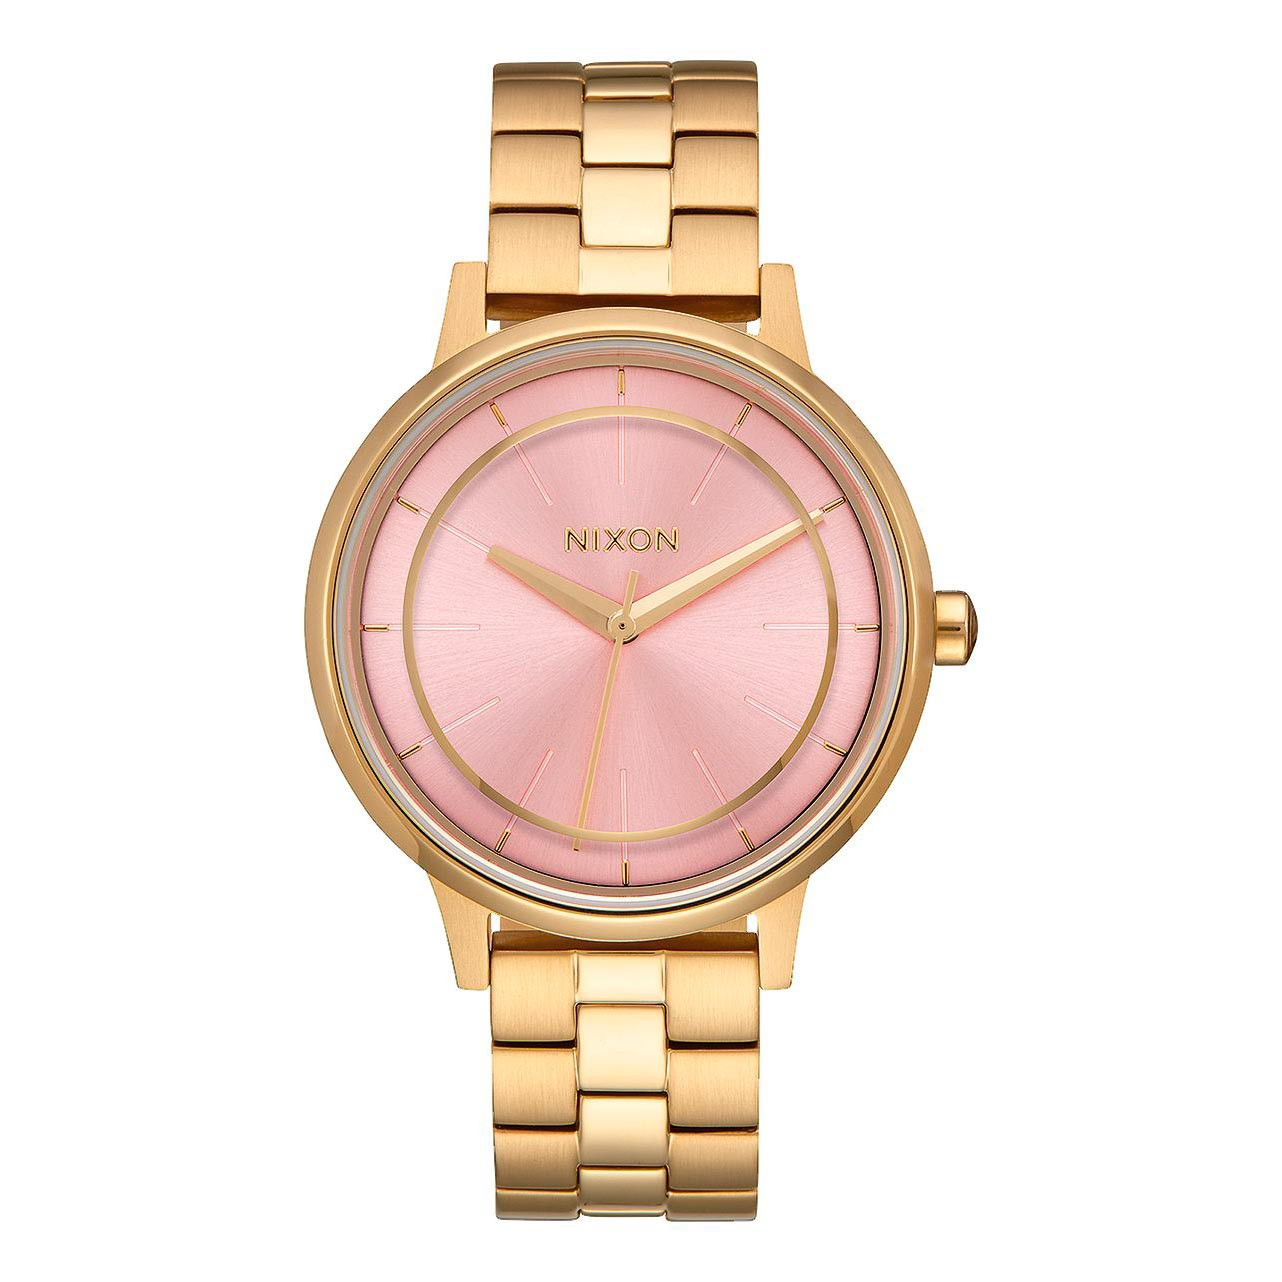 Hodinky Nixon Kensington light gold/pink